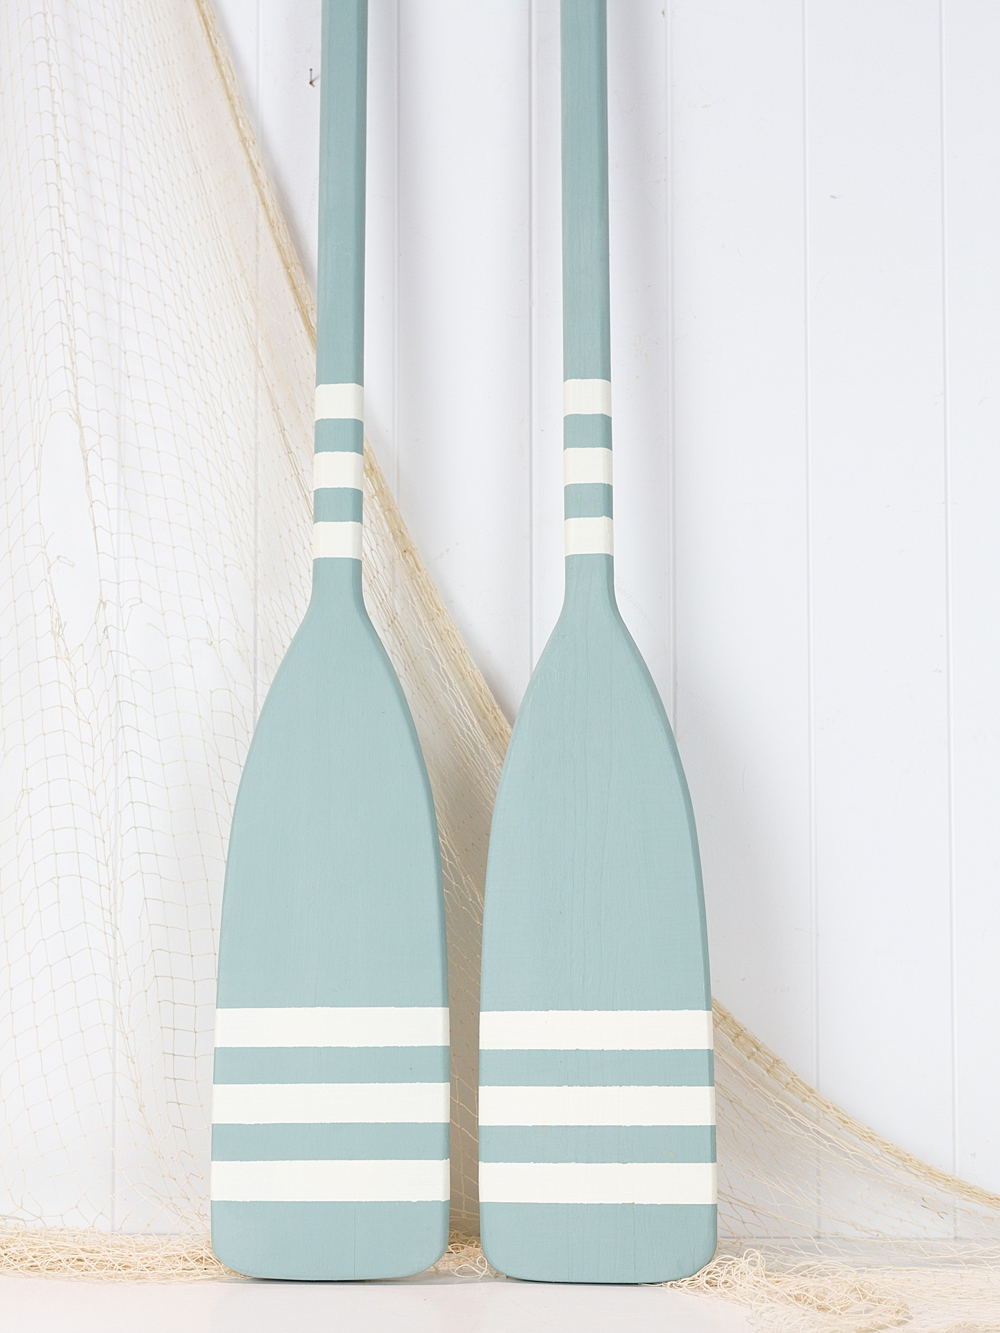 Little Cove Paddles